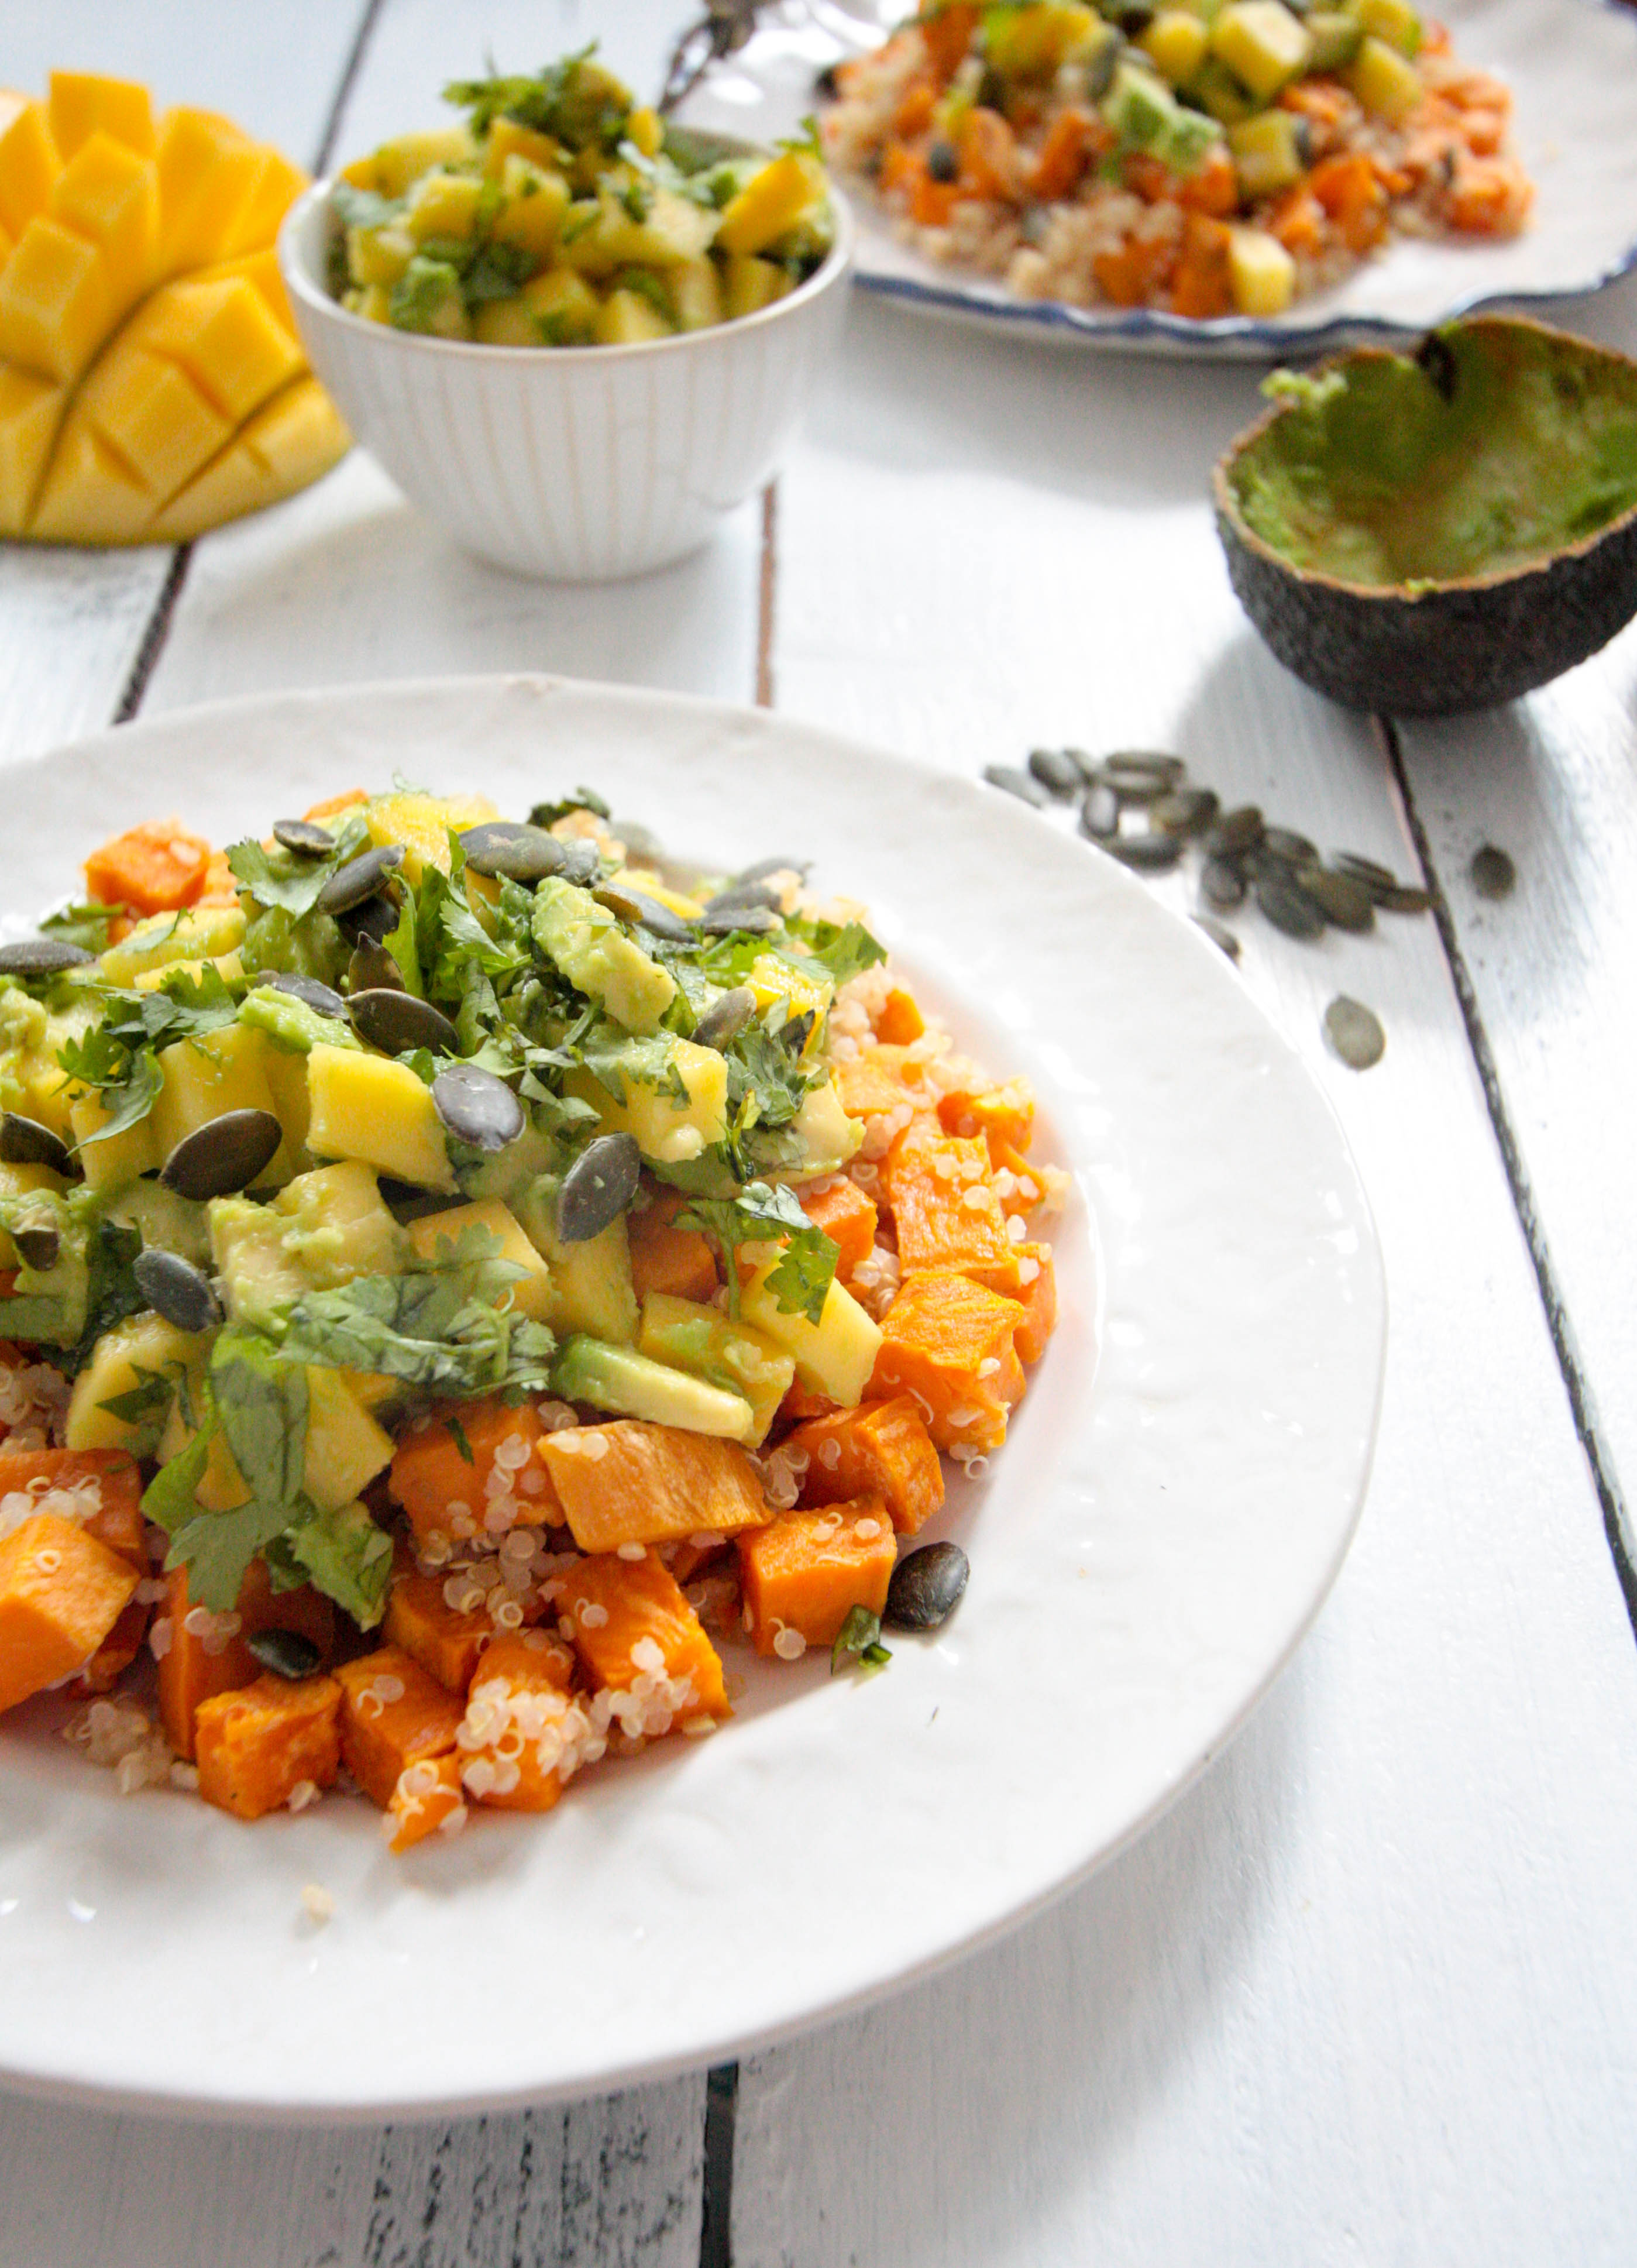 Sweet Potato Quinoa Salad with Avocado Mango Salsa